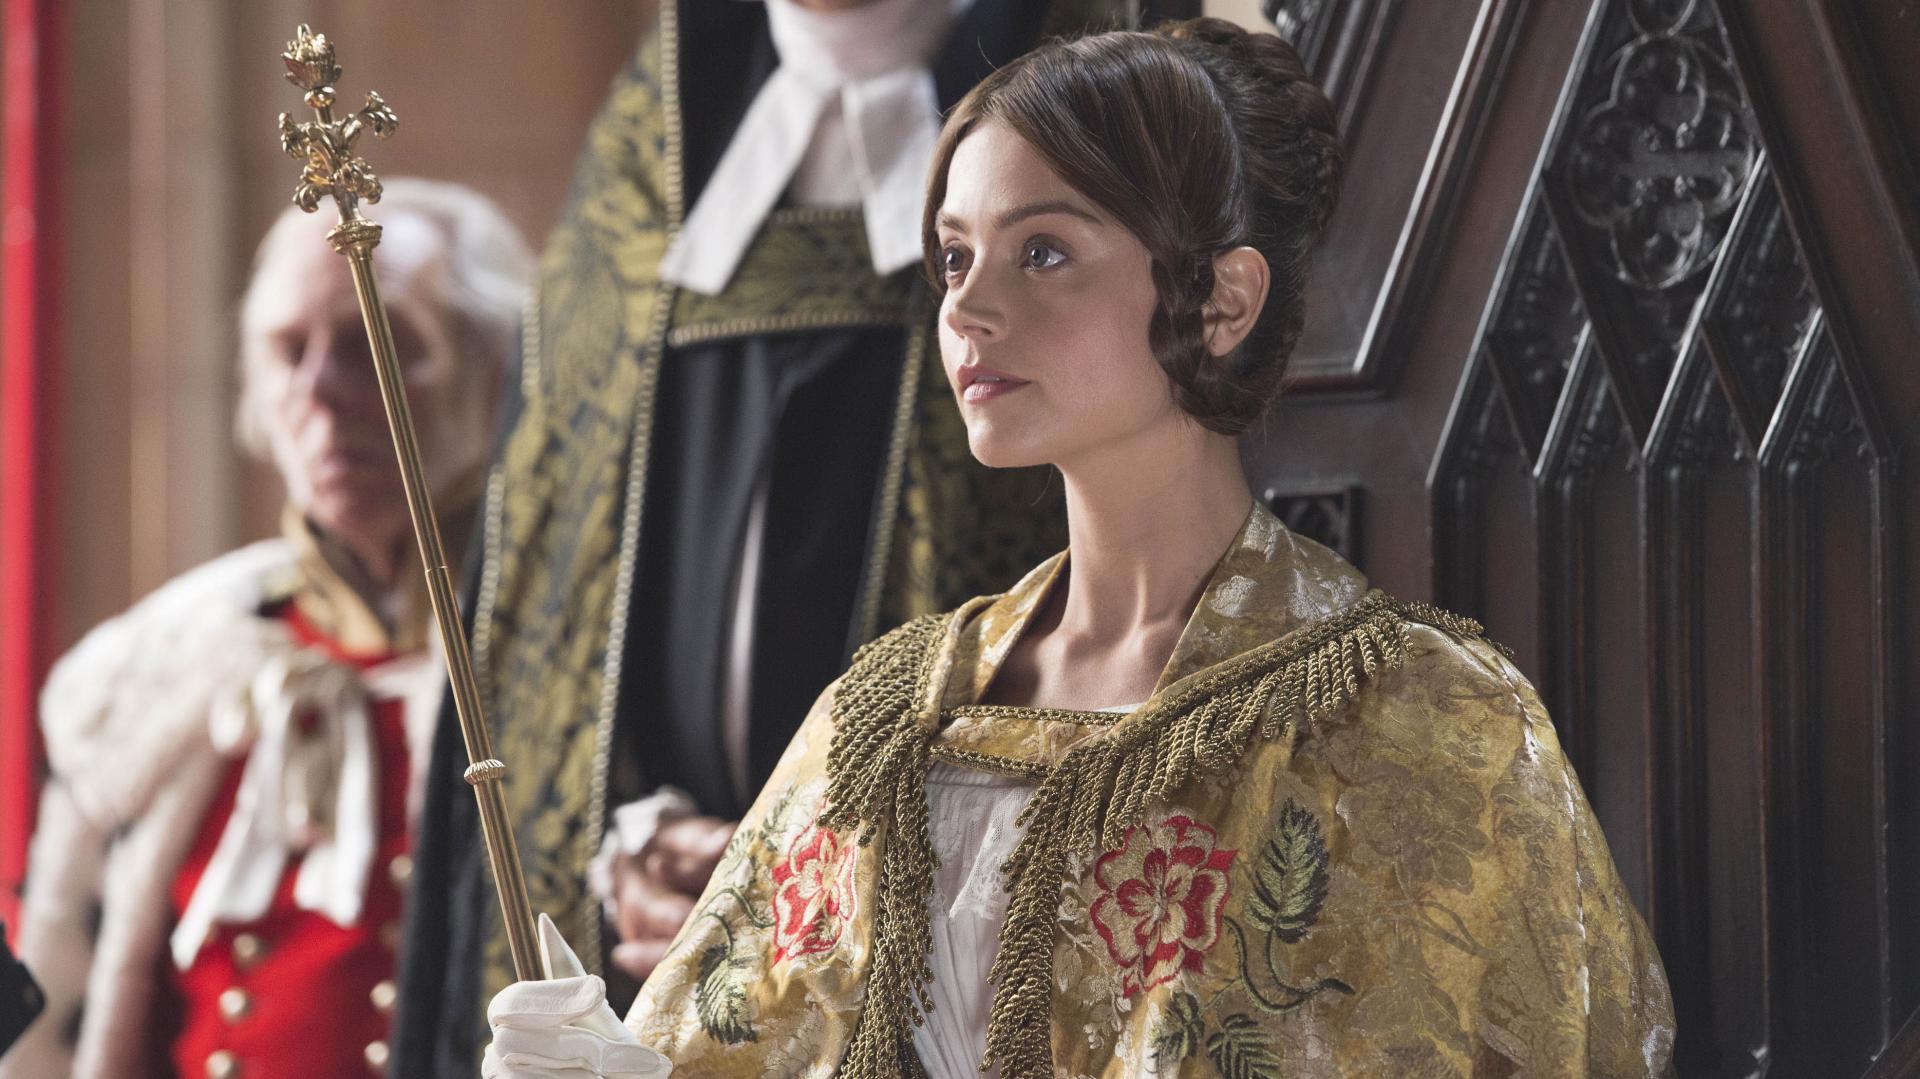 Helen Mccrory Leaving jenna coleman not leaving 'victoria' any time soon | telly